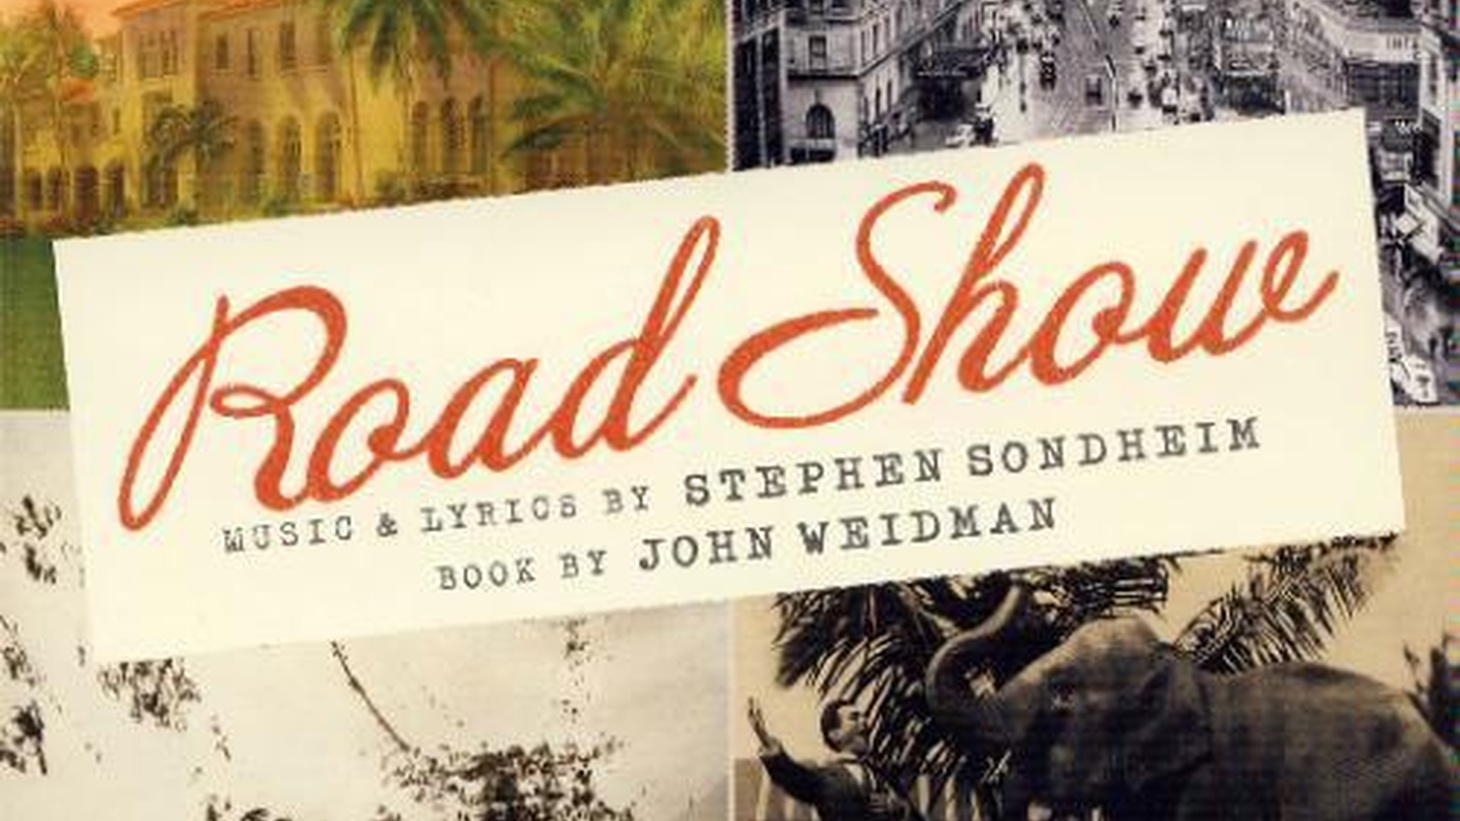 Road Show, a recording of the musical (Nonesuch, PS Classics)  Stephen Sondheim is right — his new musical, Roadshow, is not gloomy. Sondheim and his collaborator, playwright John Weidman, discuss the many revisions of the musical that has evolved in an extraordinary way, and may yet become an American classic...